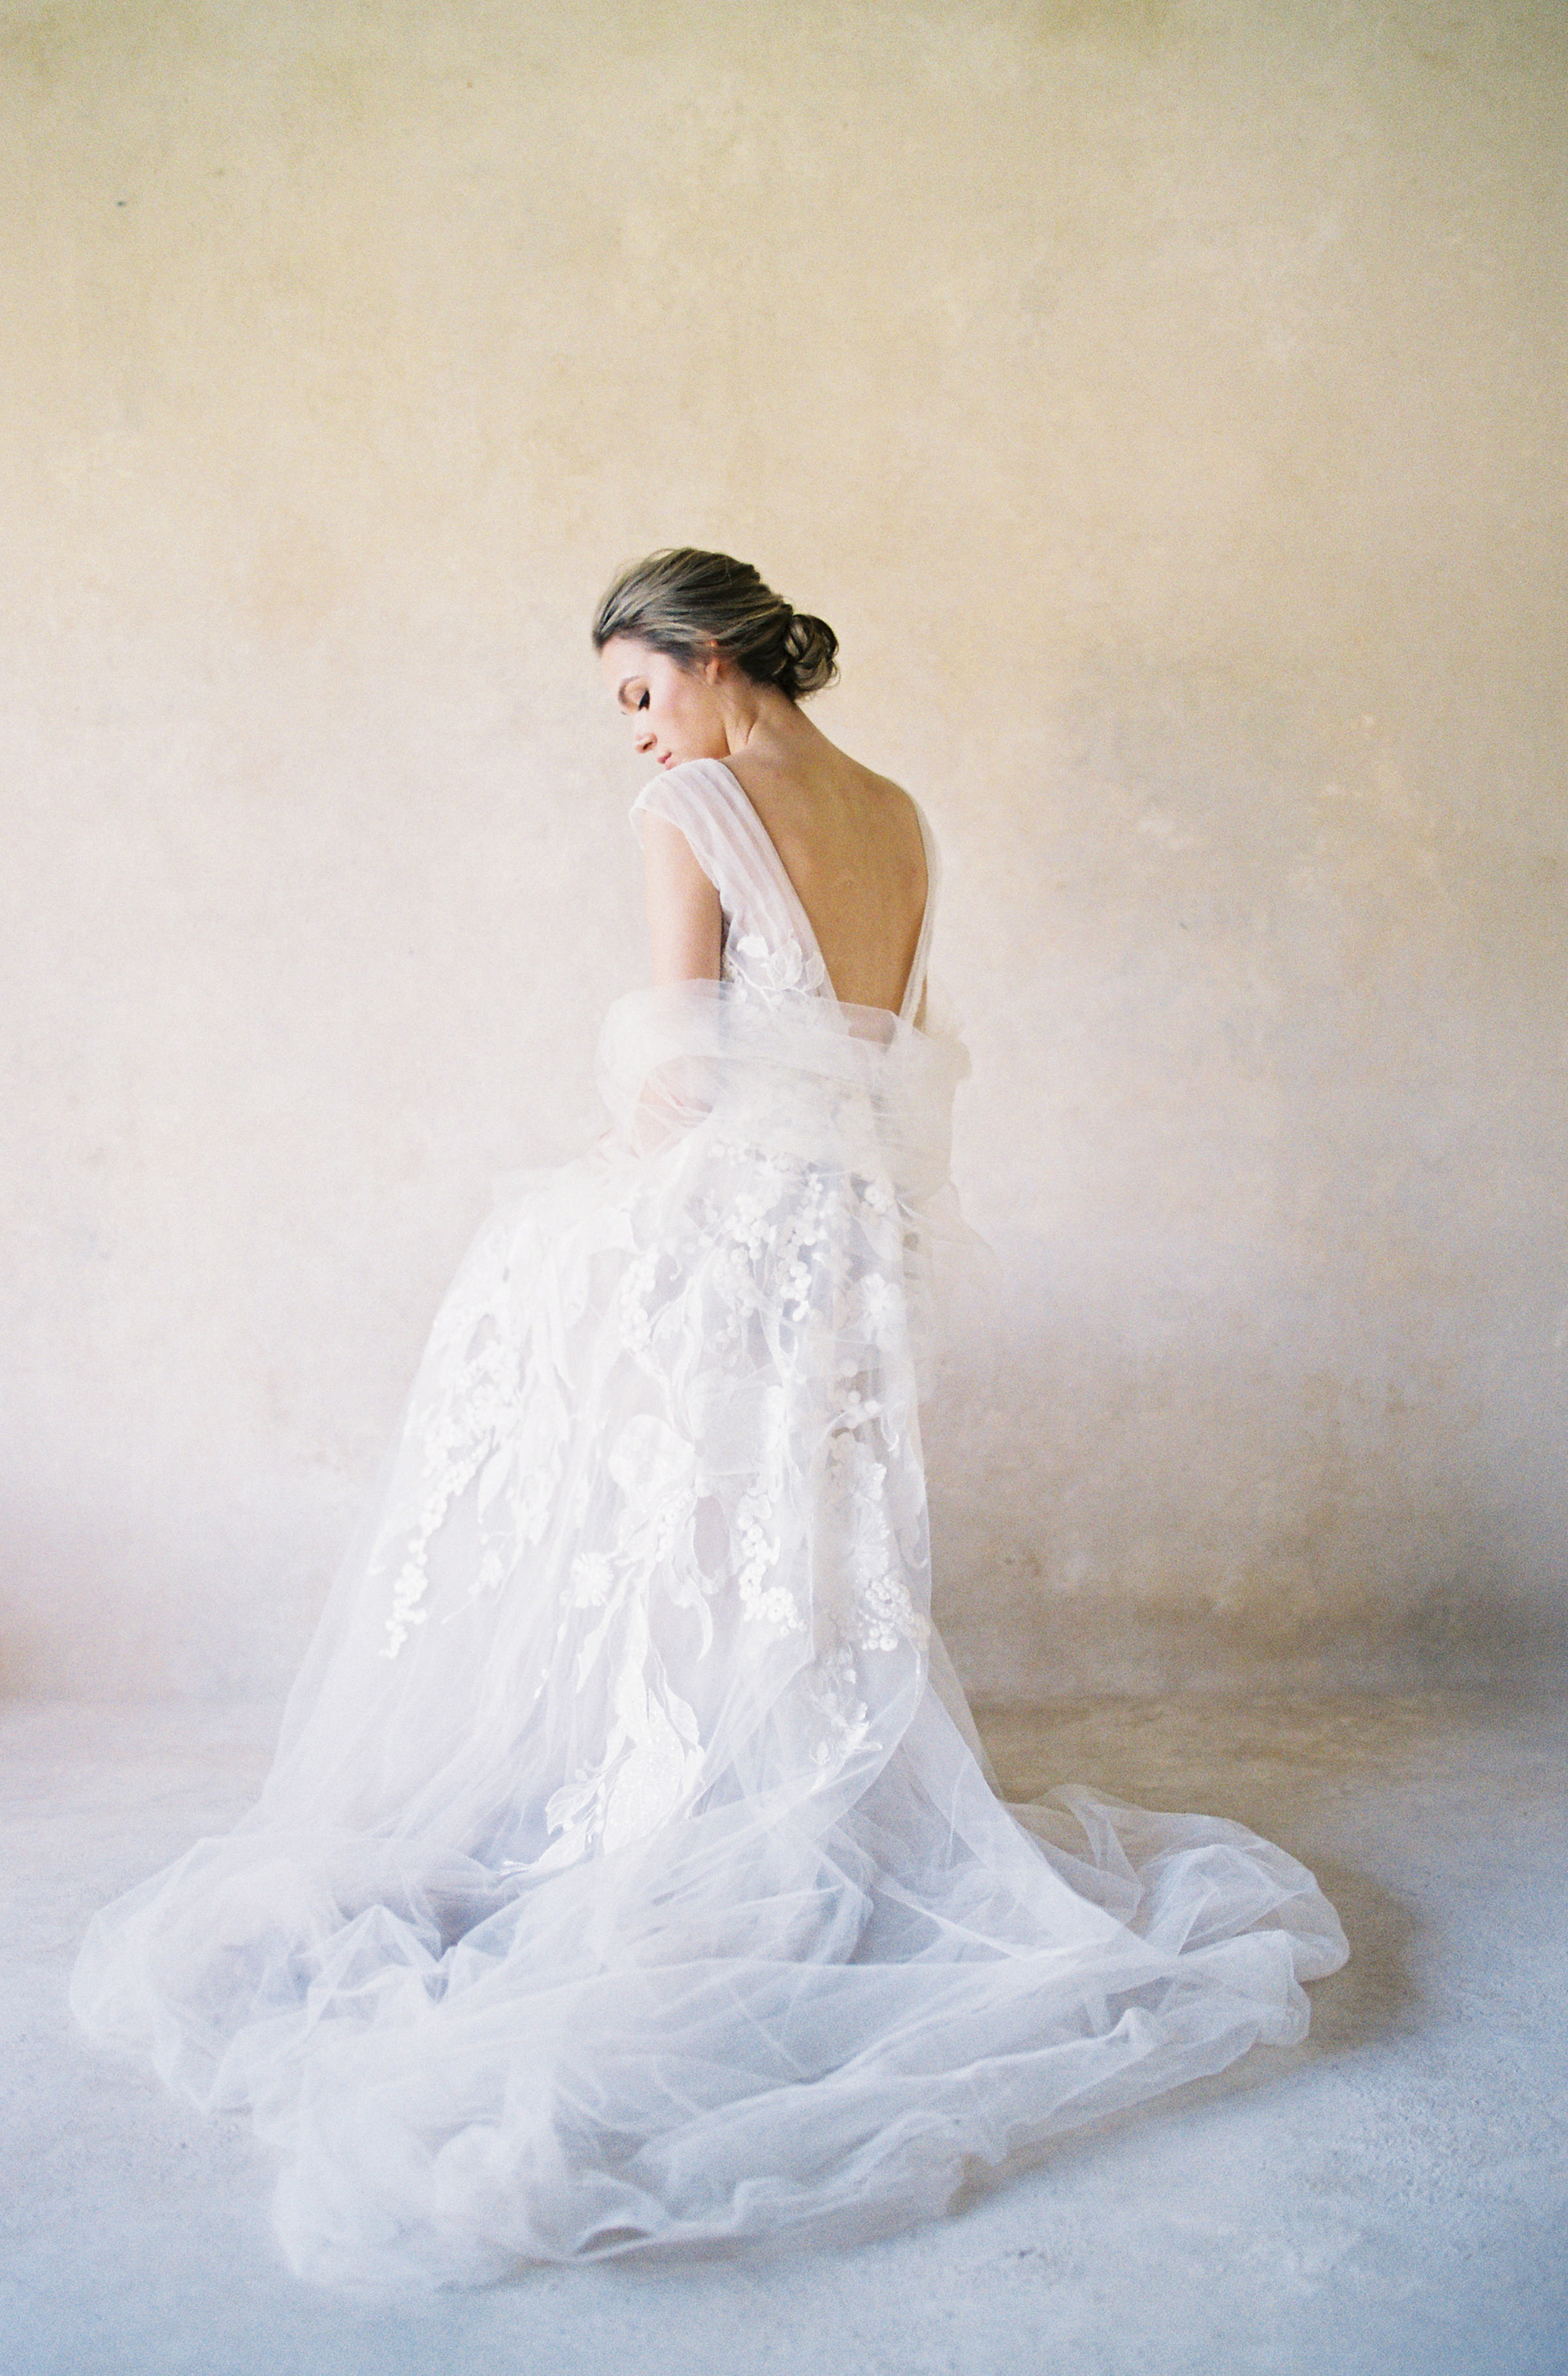 50 best wedding portraits of the decade - Bridal portrait in backless gown - photo by Jen Huang